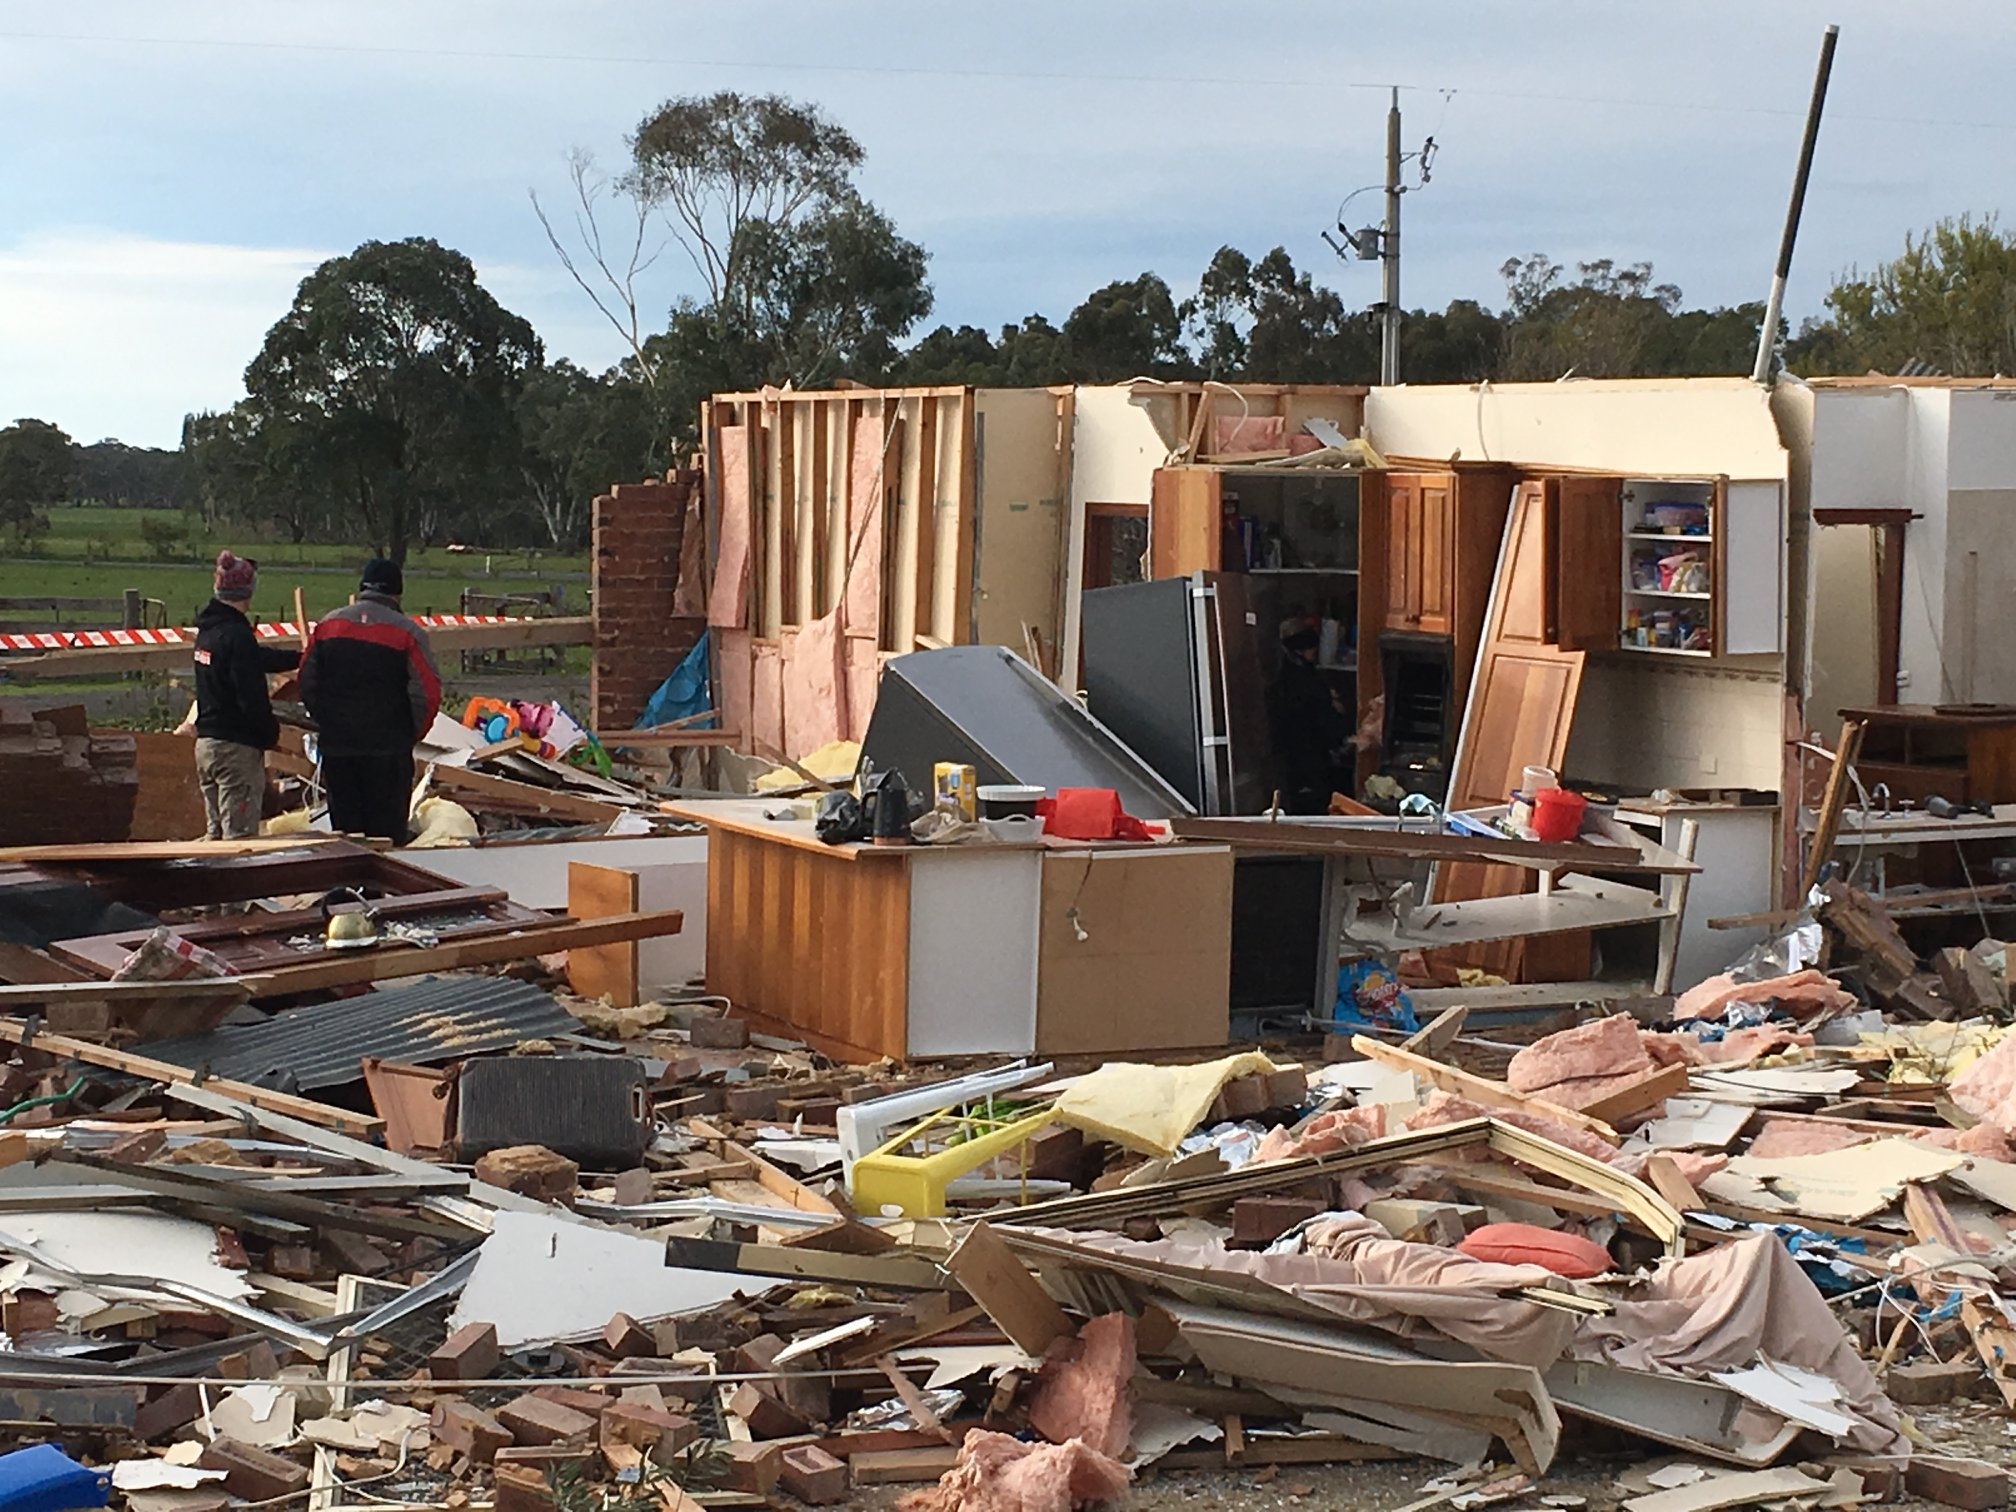 photo: Bureau of Meteorology;link: https://gallery.windy.com/albums/a/australia-tornado-damage-2019.jpg;desc: Damage from tornado in Axe Creek near Bendigo, Vic, 29 June 2019;